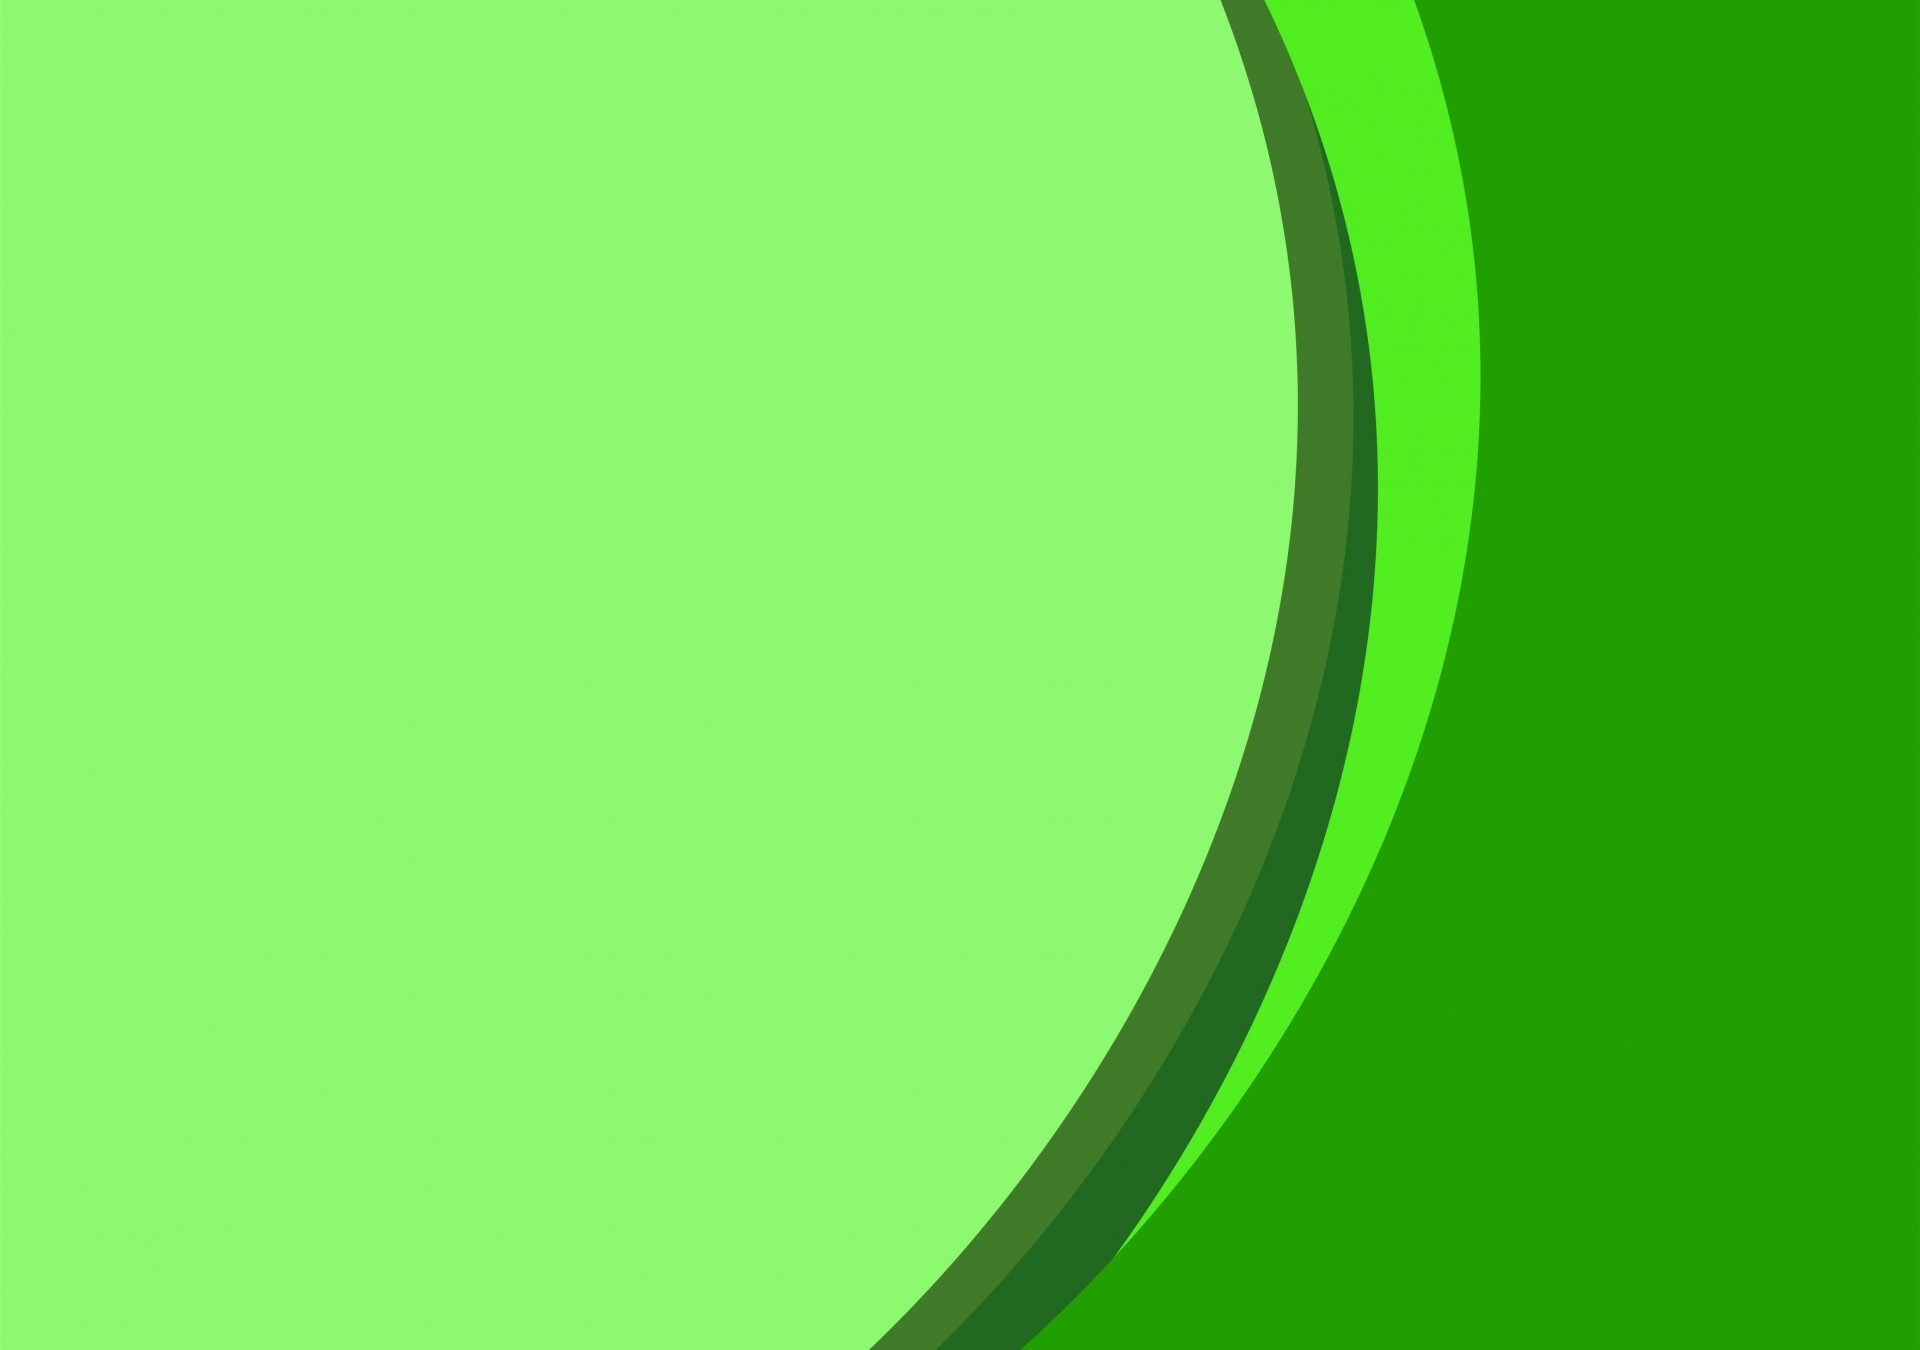 Green Background Clipart Free Stock Photo Hd Public Domain ...